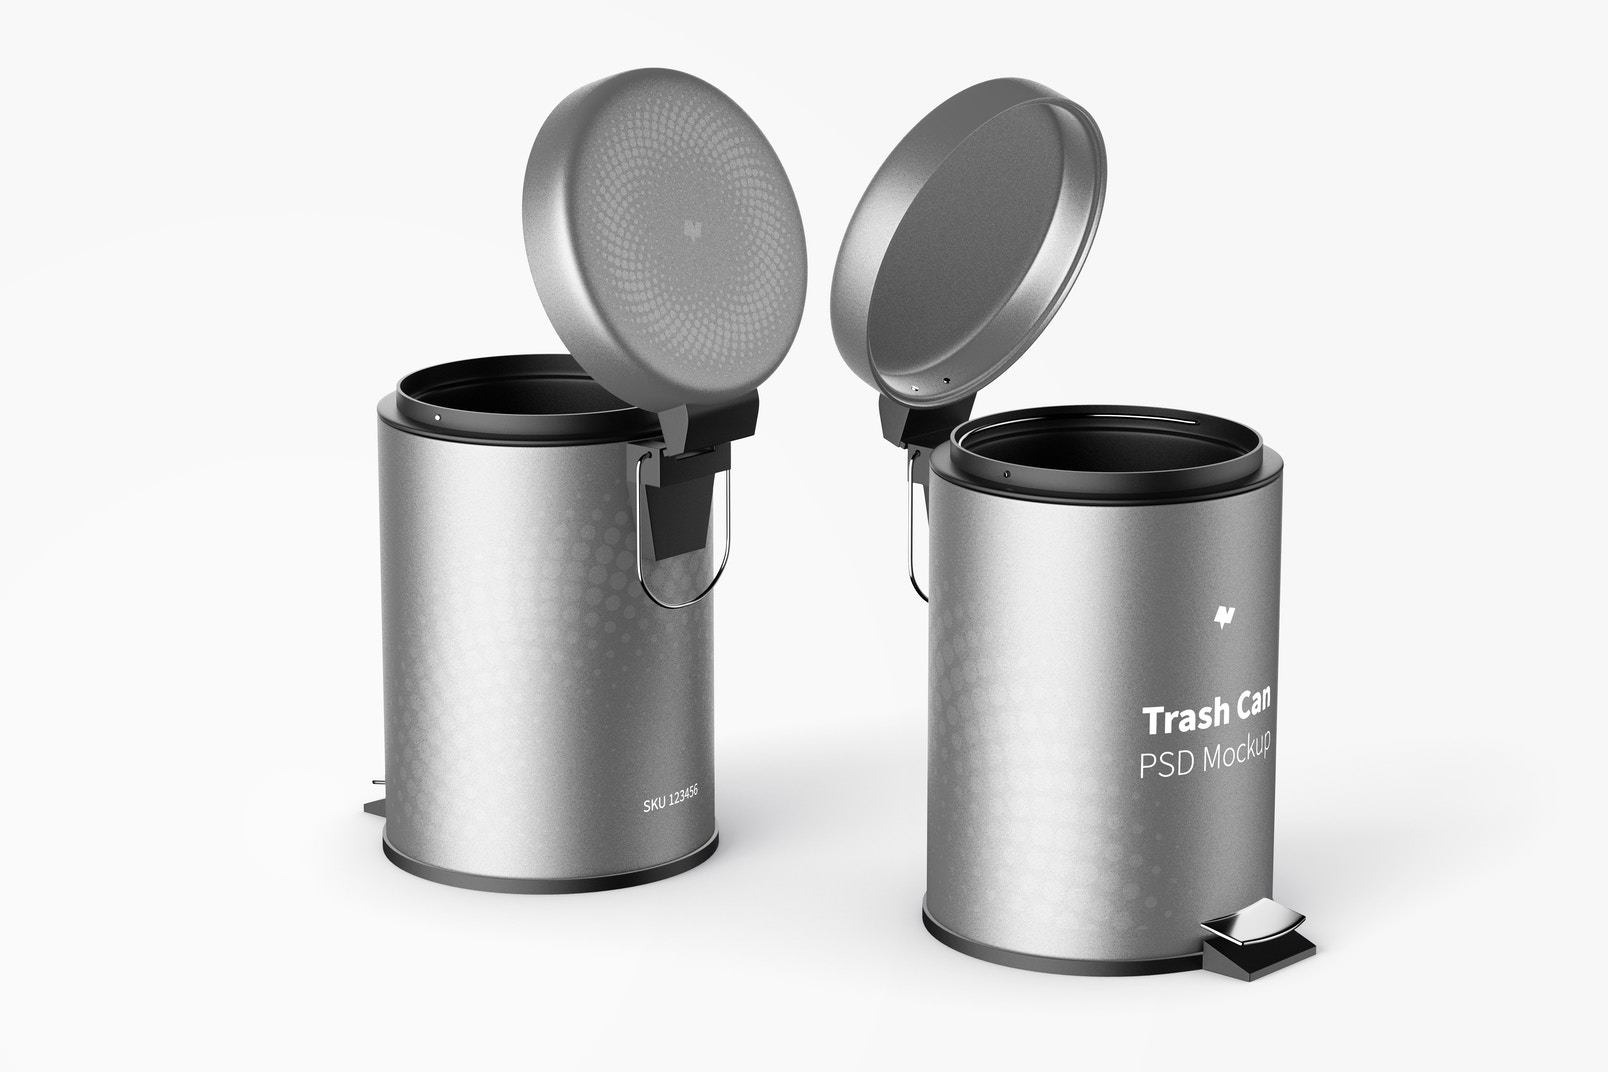 Trash Cans With Foot Pedal Mockup